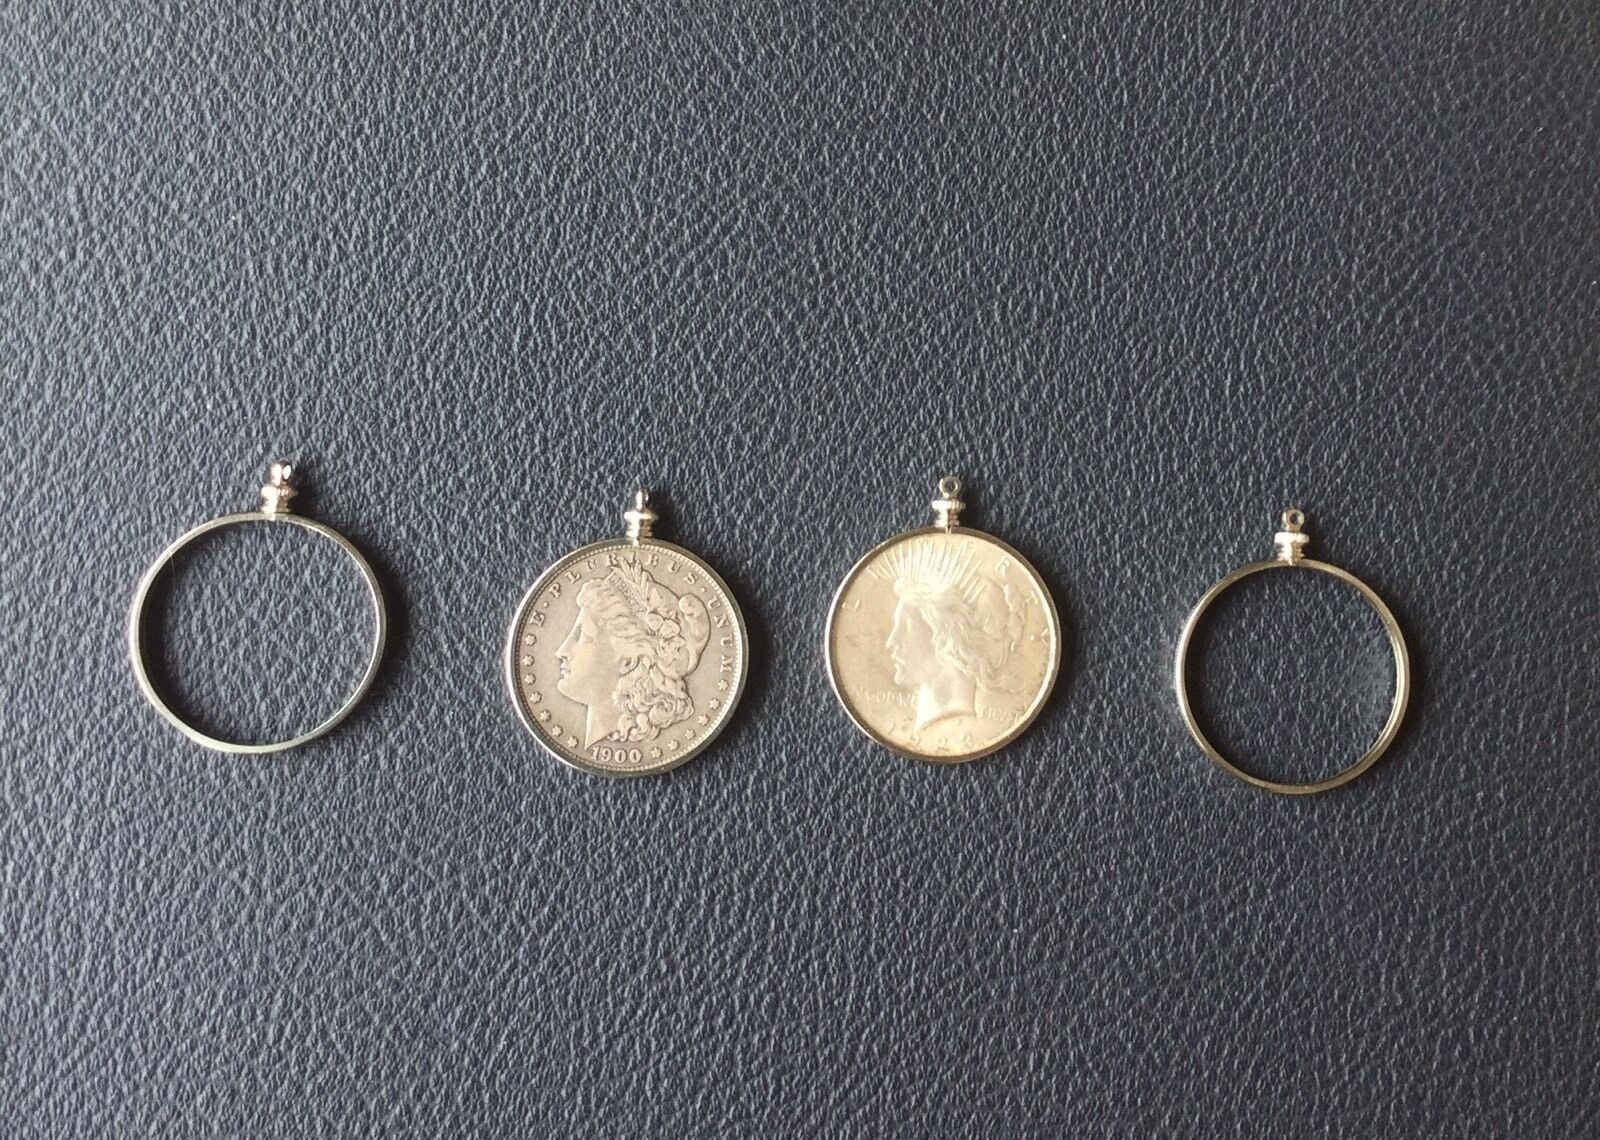 PACK OF 12 BEZELS  4 PRONGS COIN HOLDERS MORGAN SILVER DOLLAR NECKLACE PENDANT